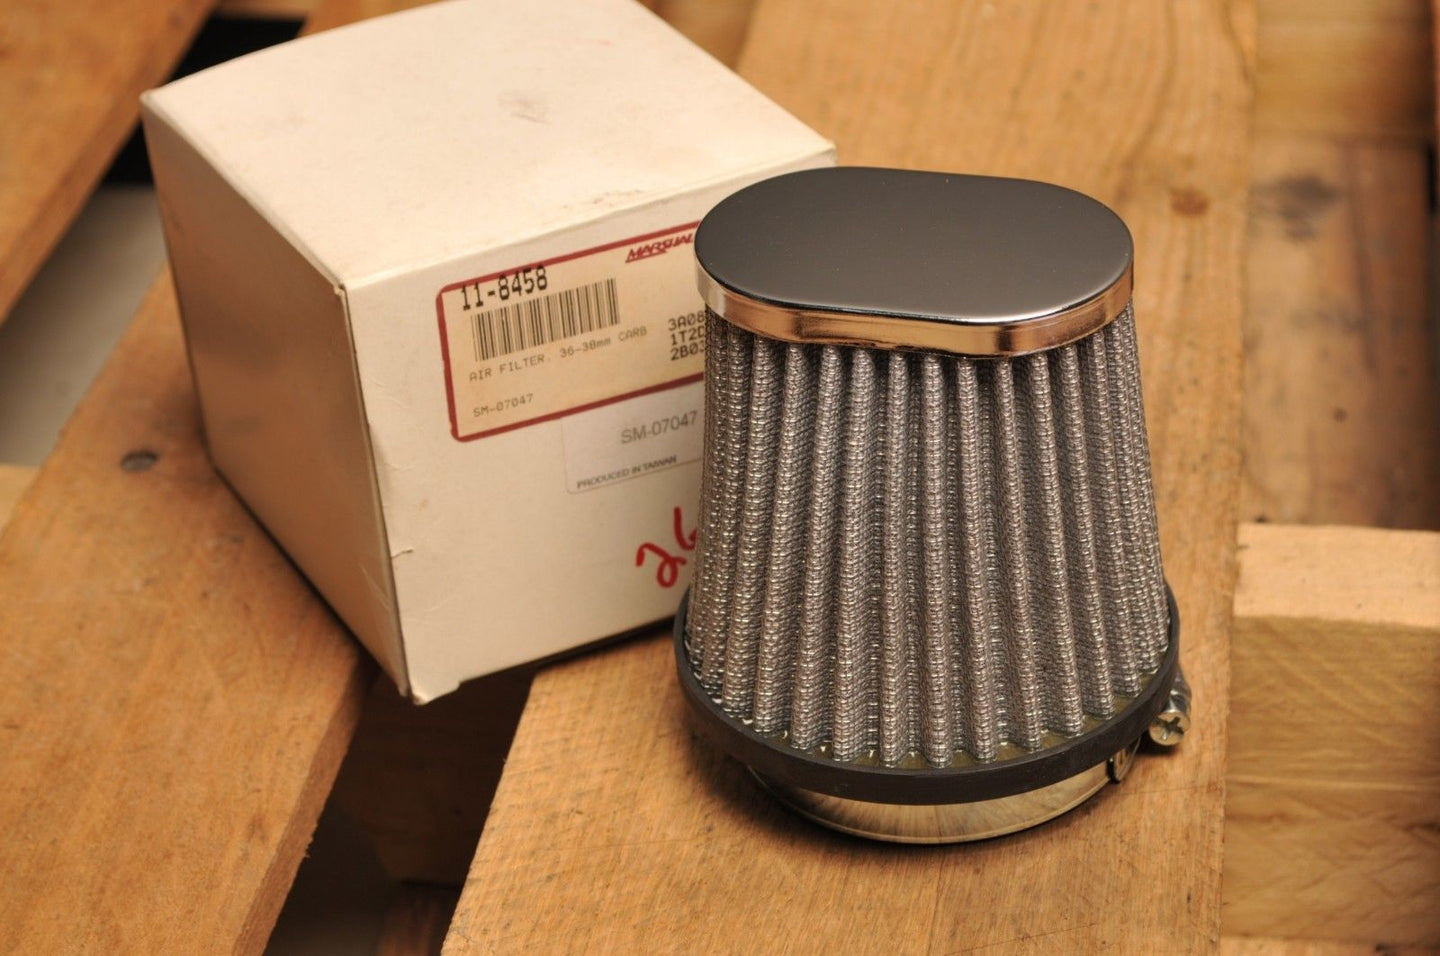 SPI UNIVERSAL AIR FILTER SM-07047 - 36-38mm MIKUNI CARB -